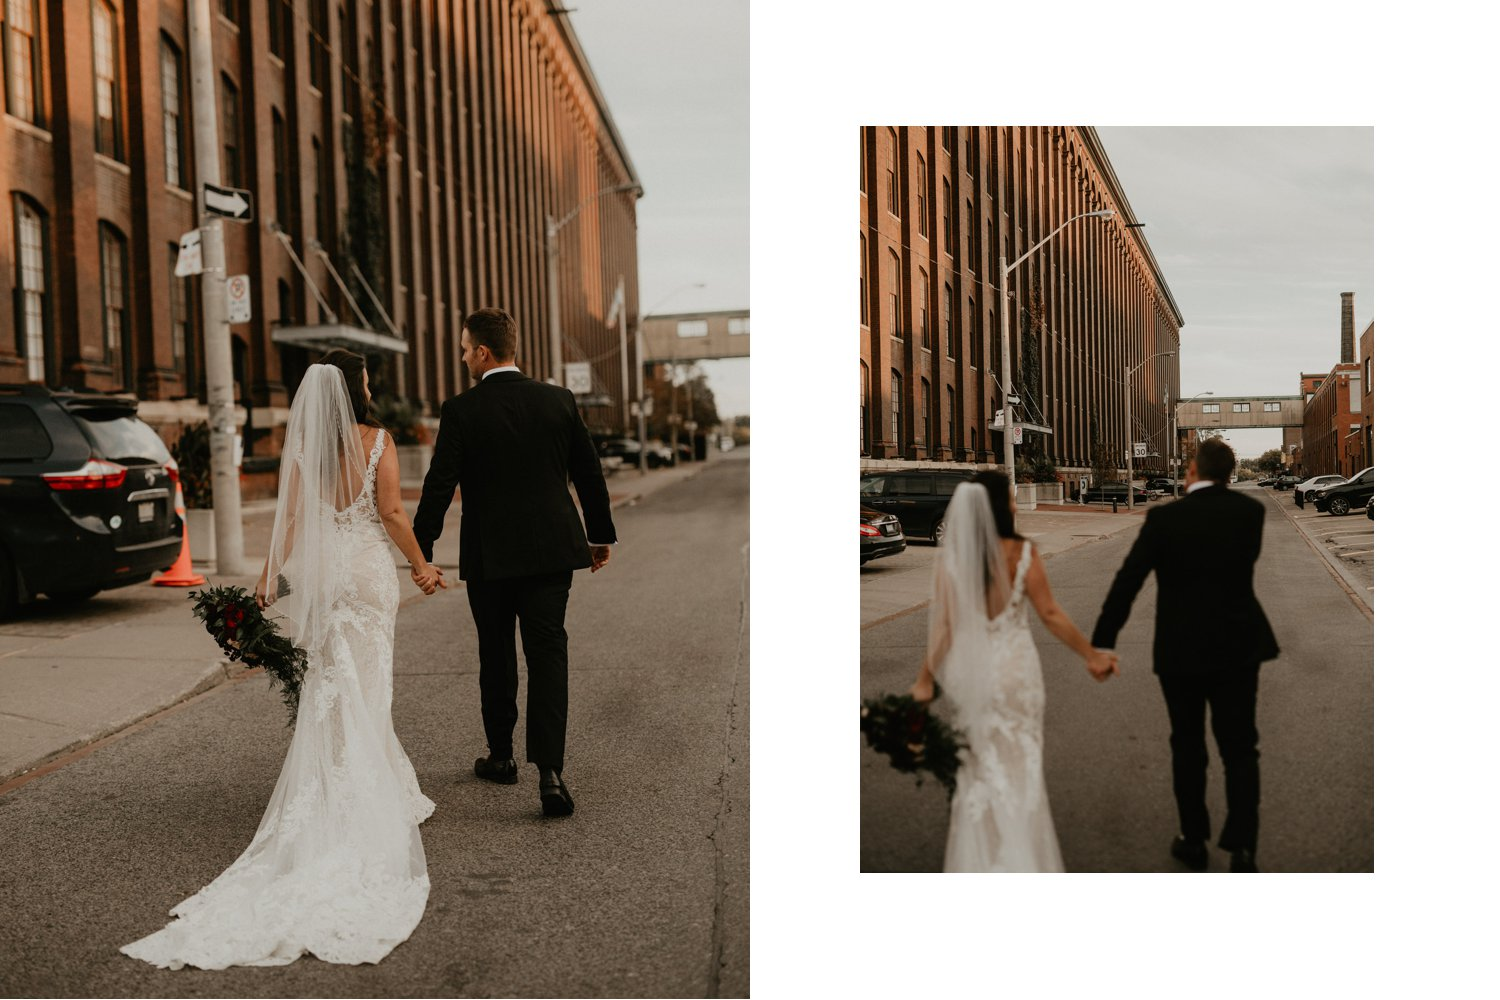 Liberty Village Wedding - bride and groom walk off into the sunset